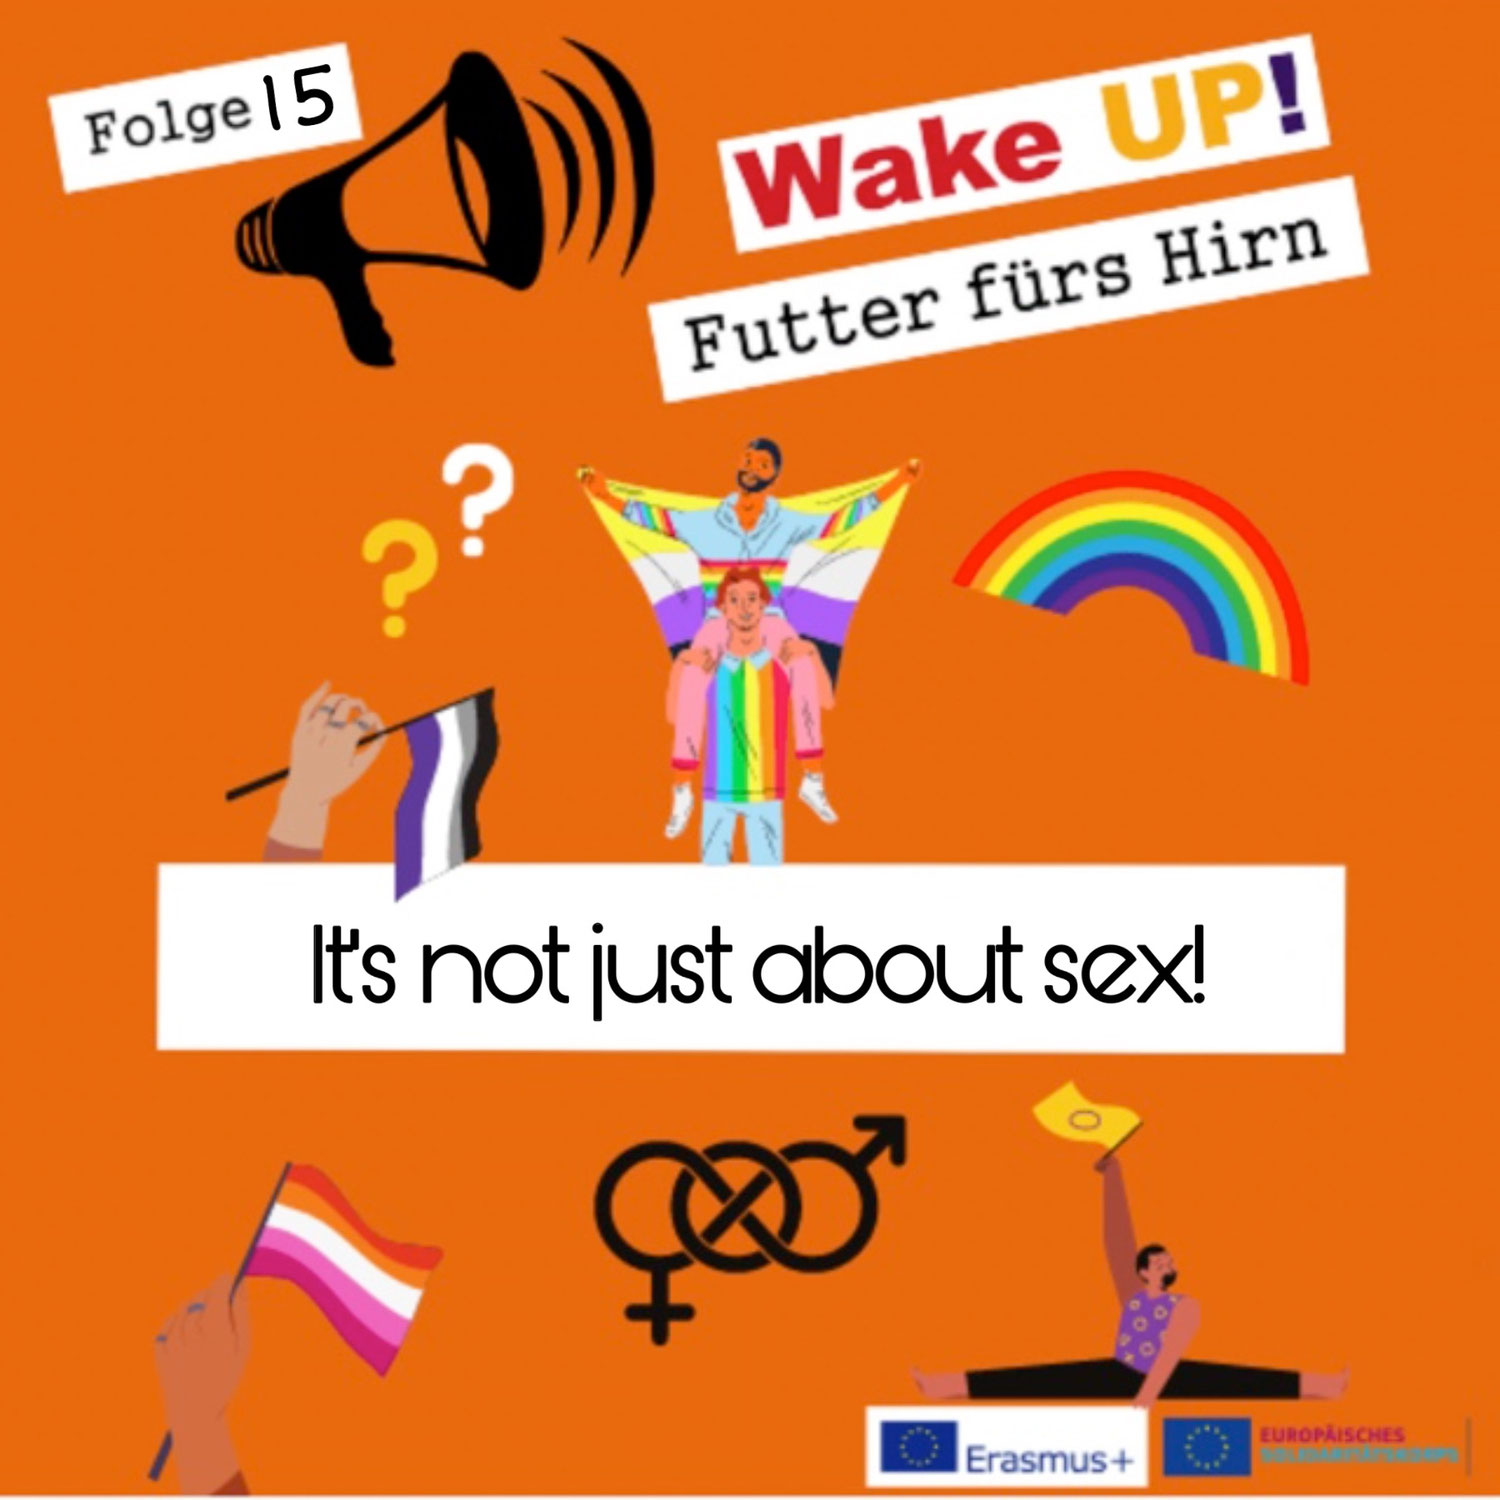 Folge 15 - It's not just about sex!